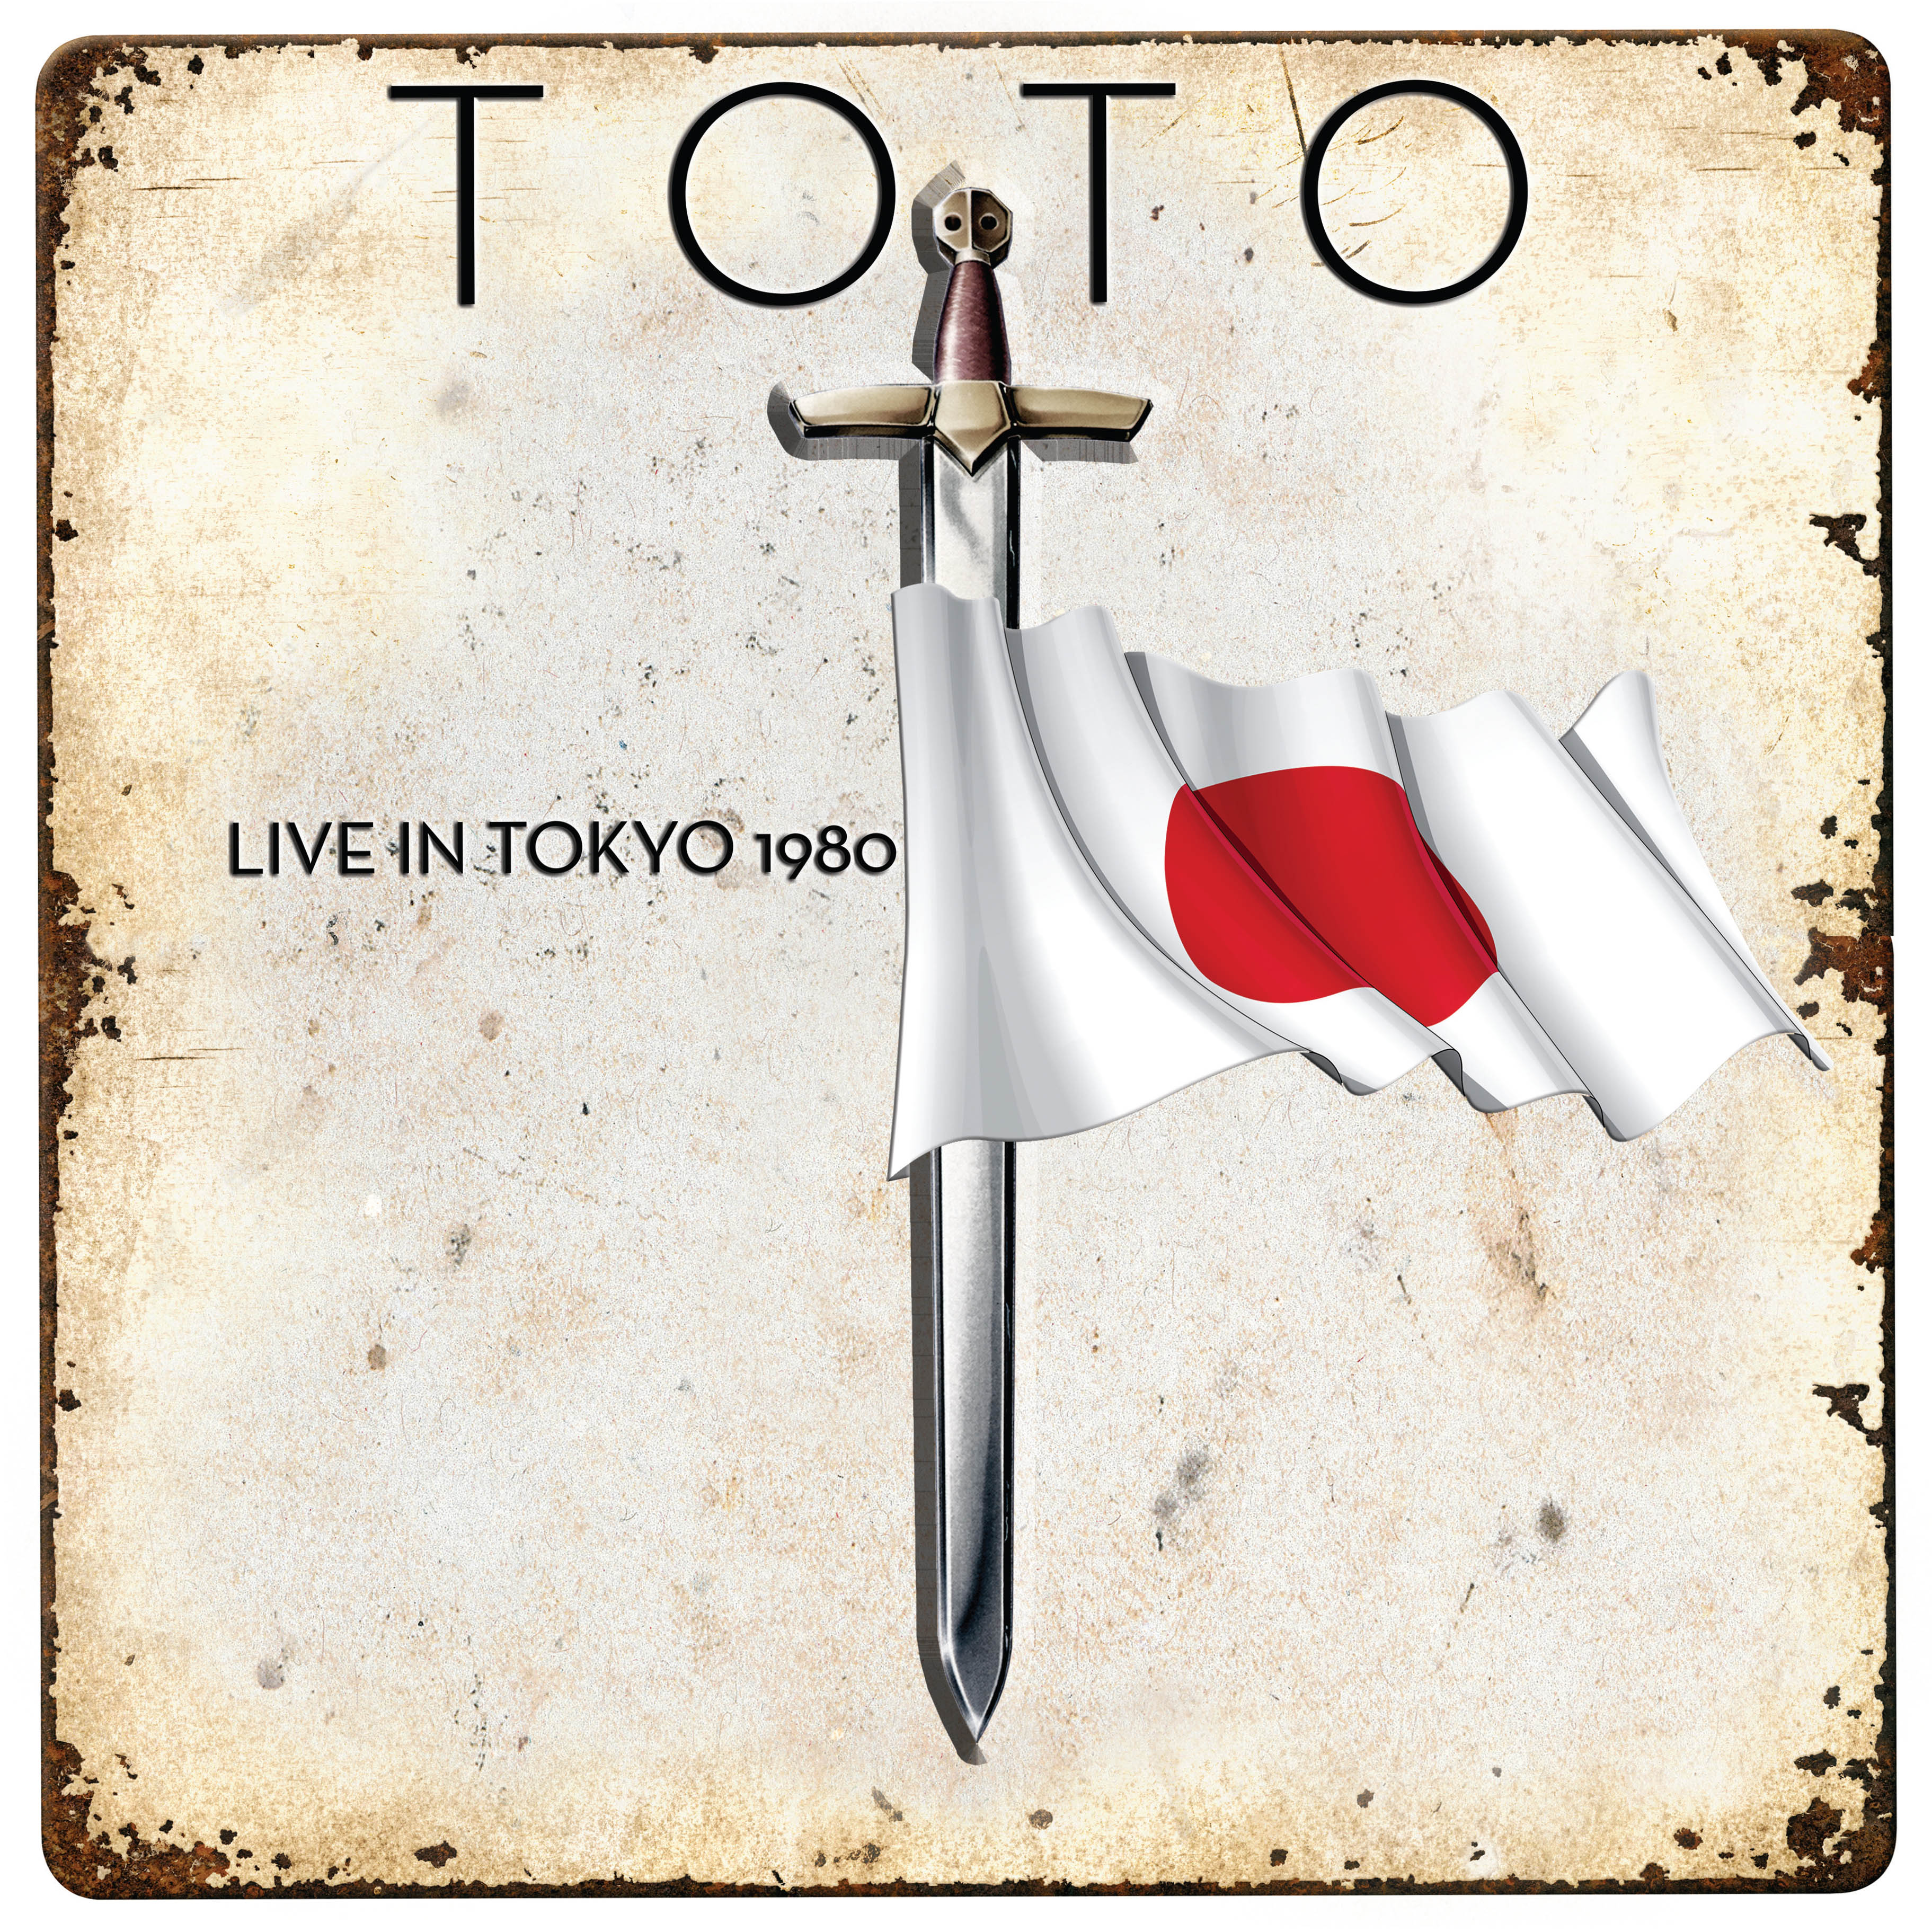 Toto - Live In Tokyo 1980 [RSD Drops Oct 2020]